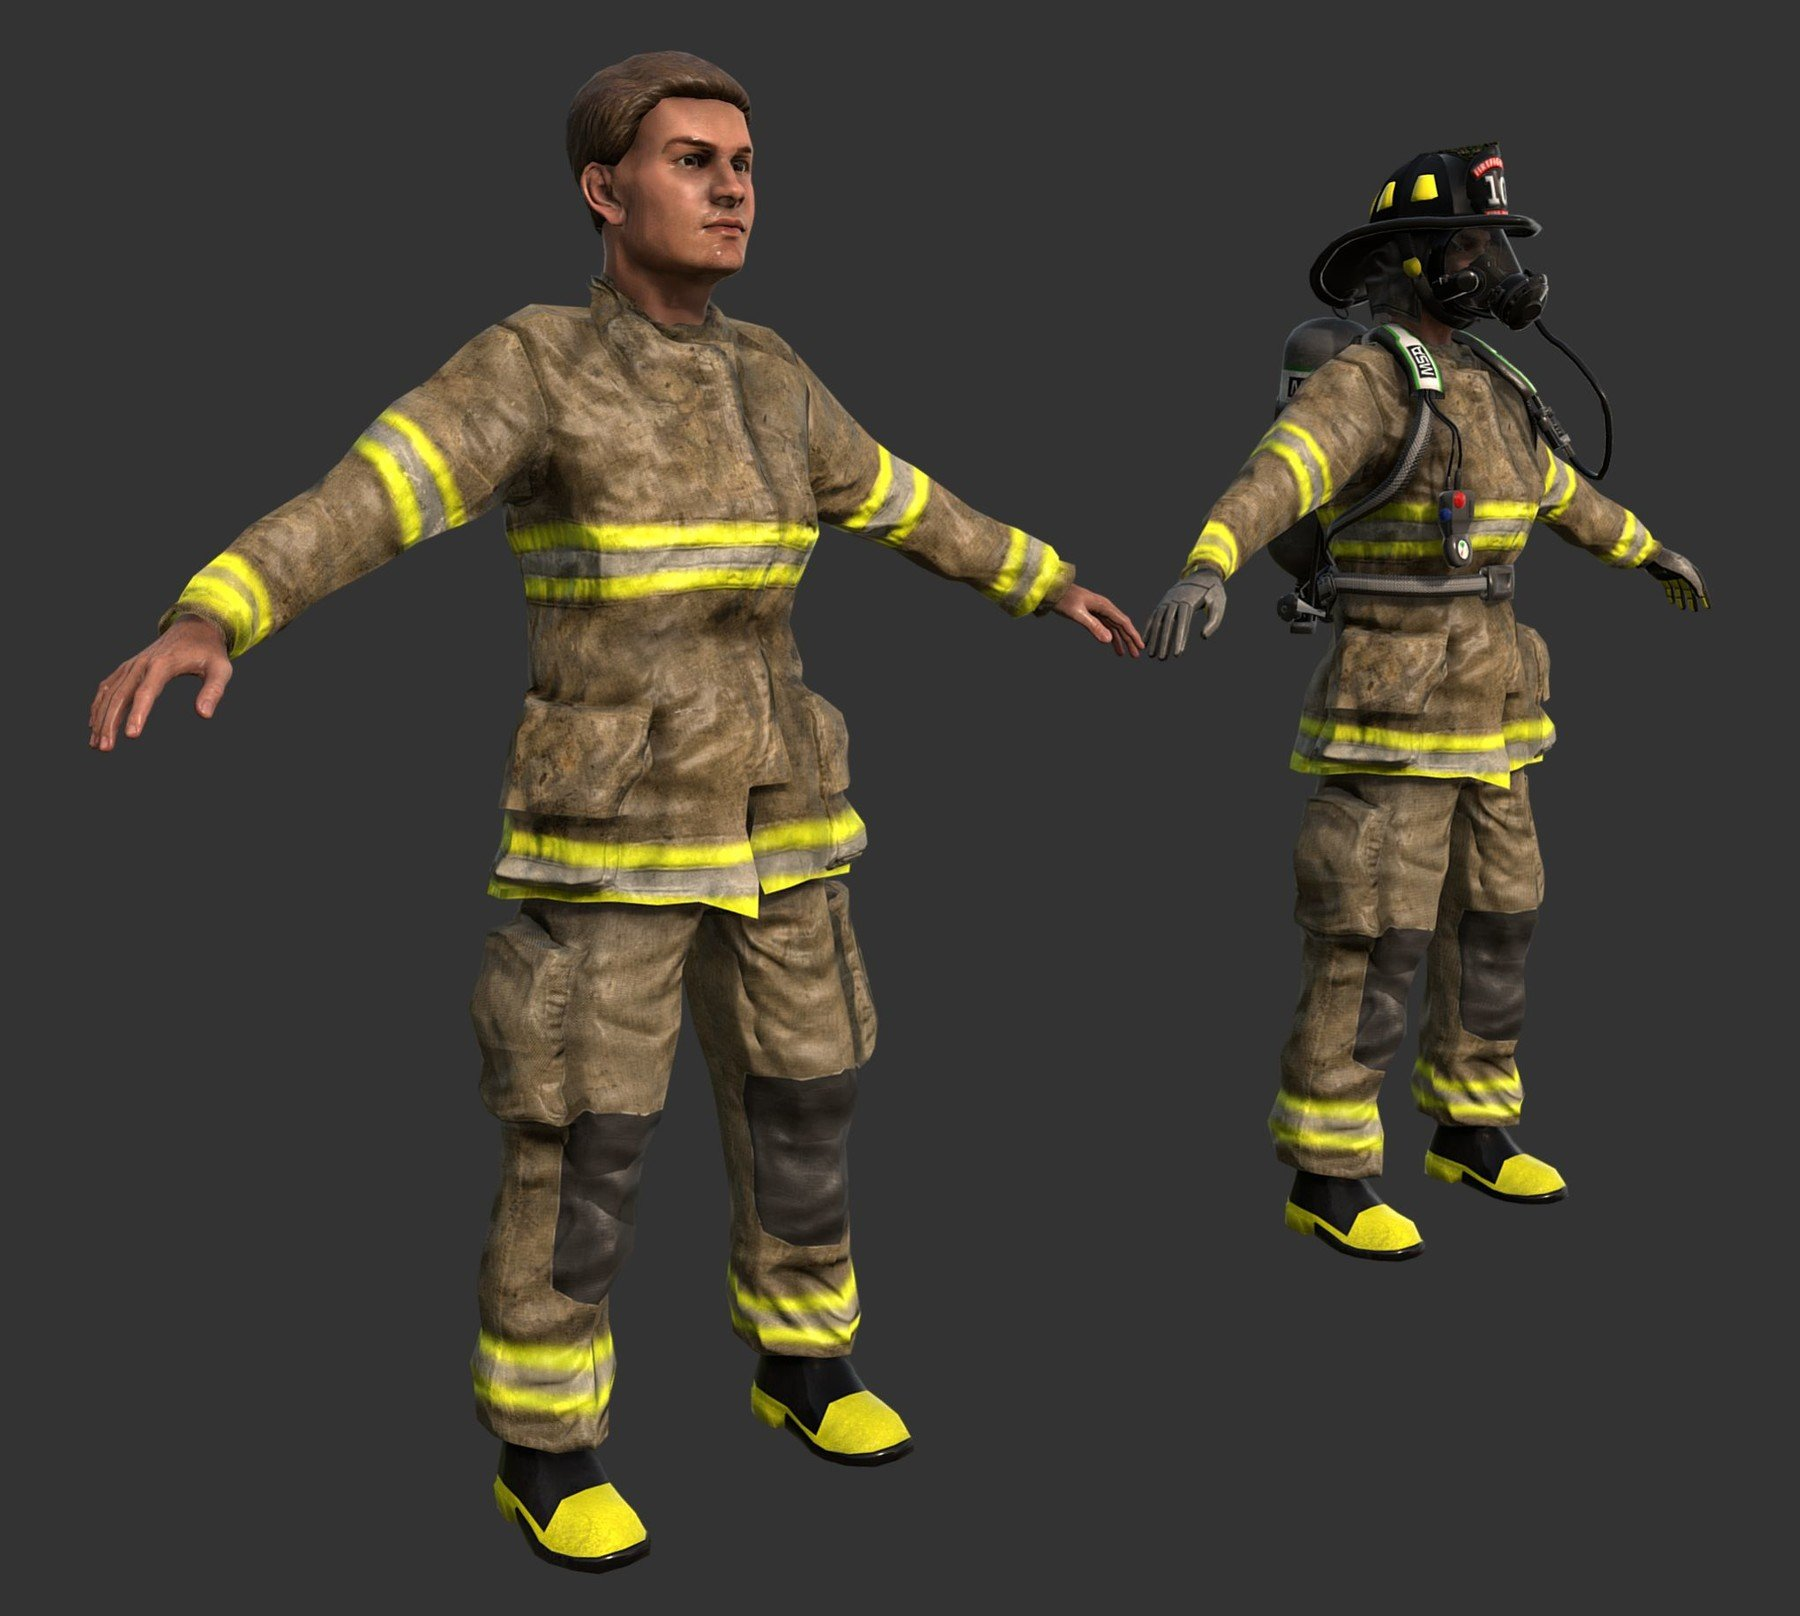 PBR Seamless Textures - Firefighter Character 3D Game Ready